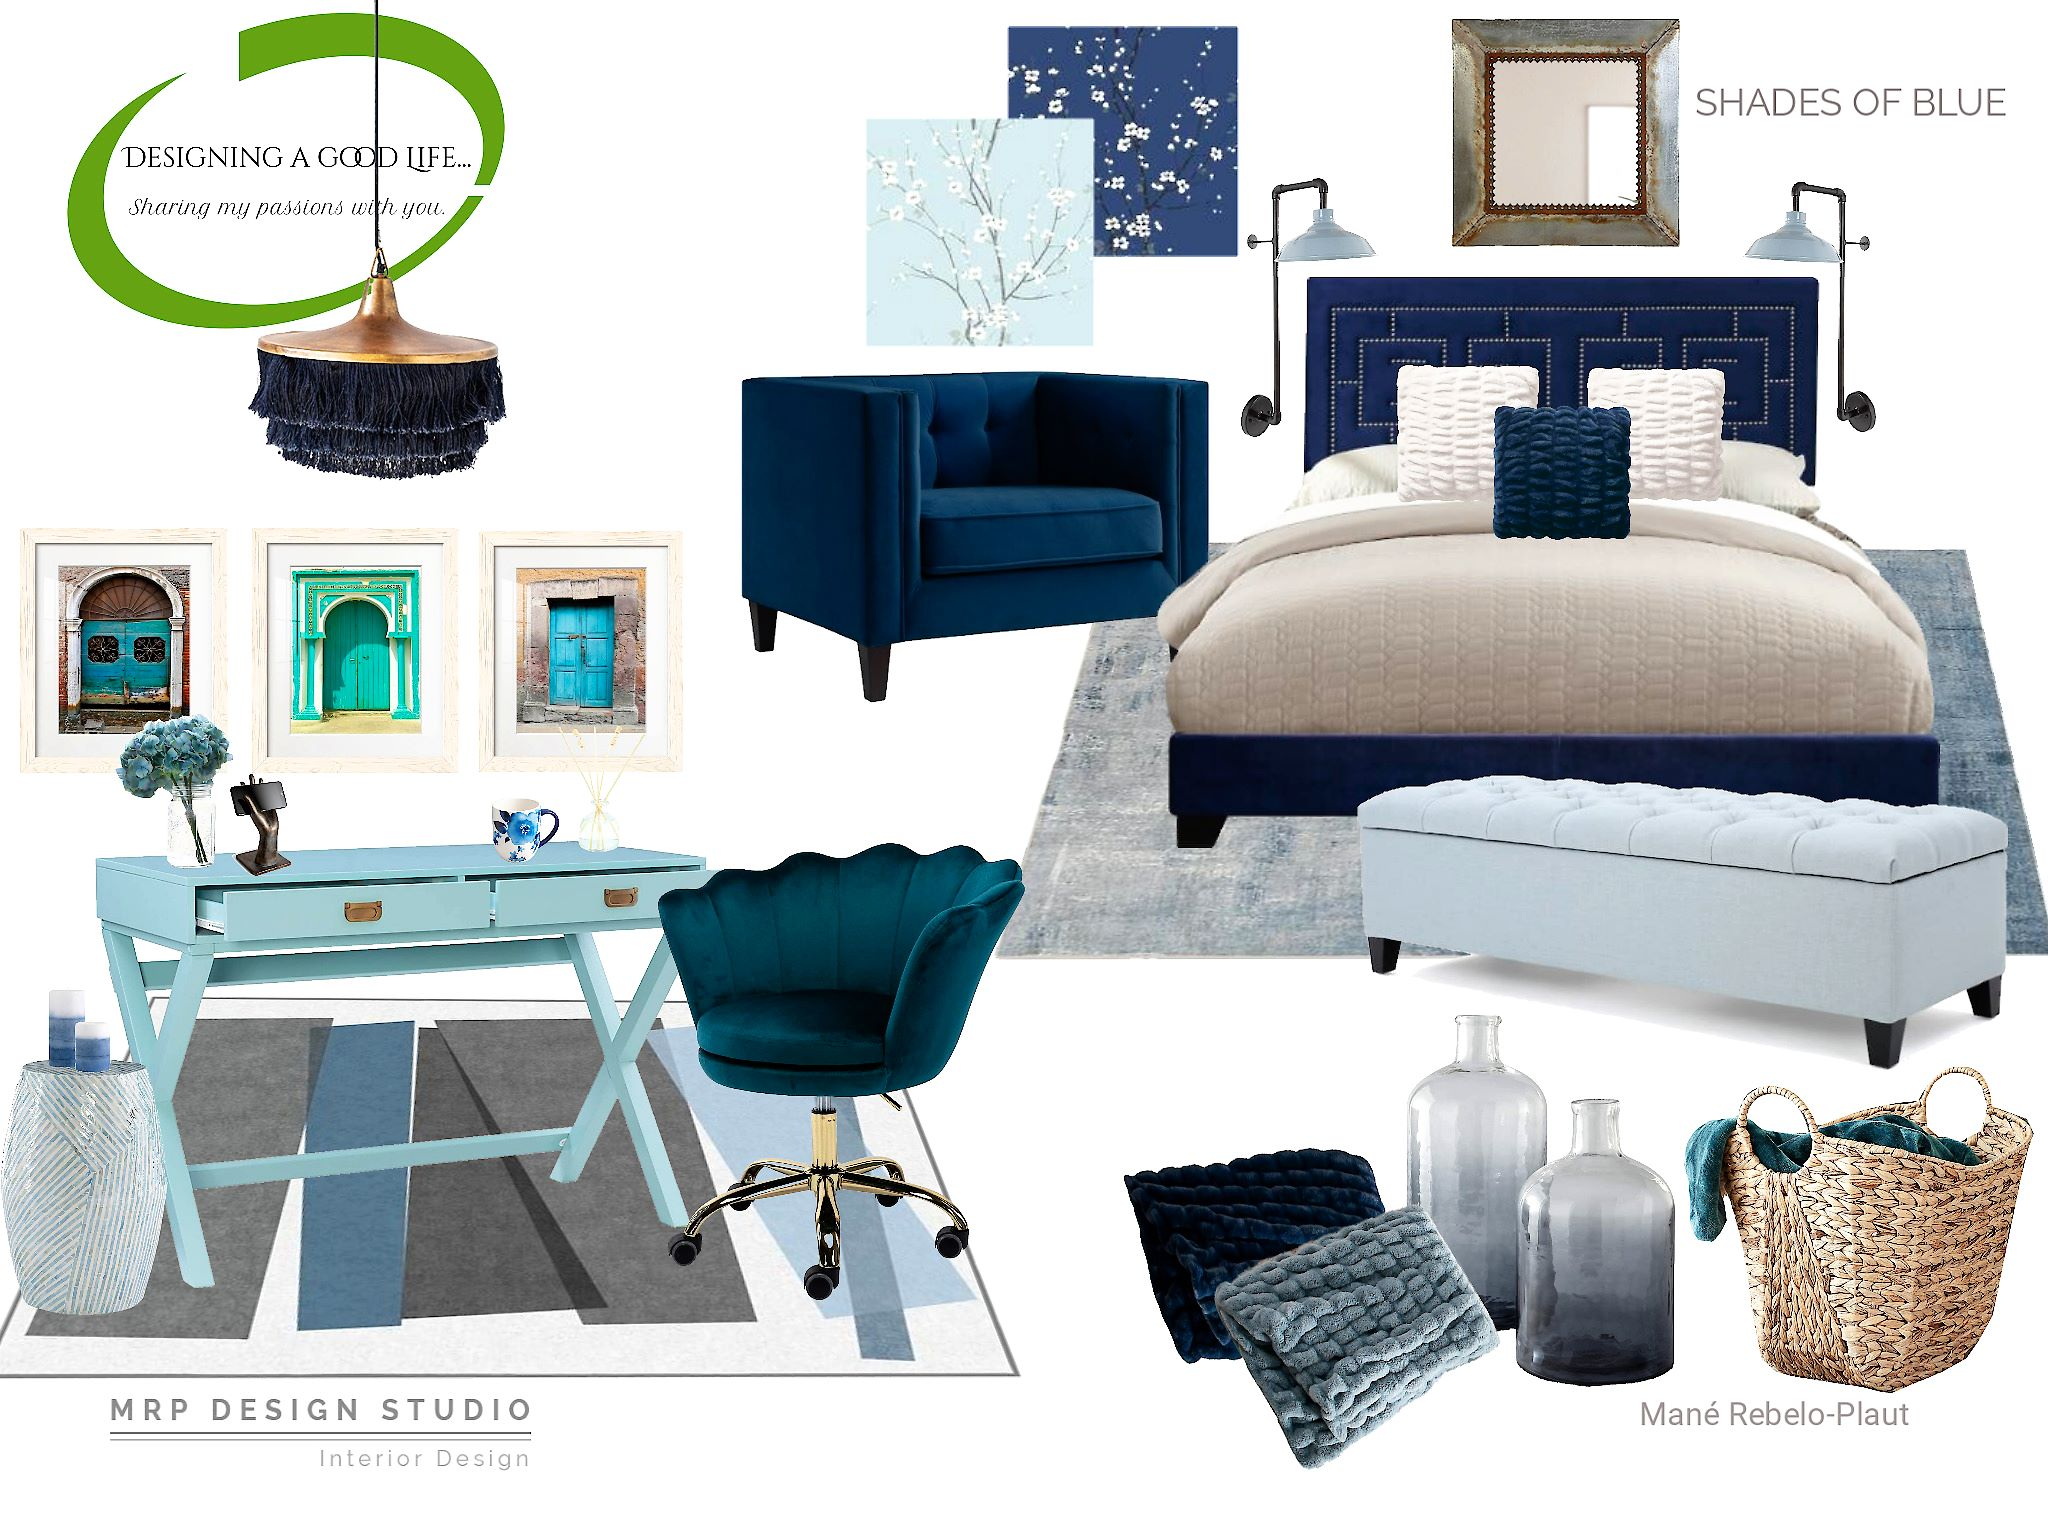 Shades of Blue!